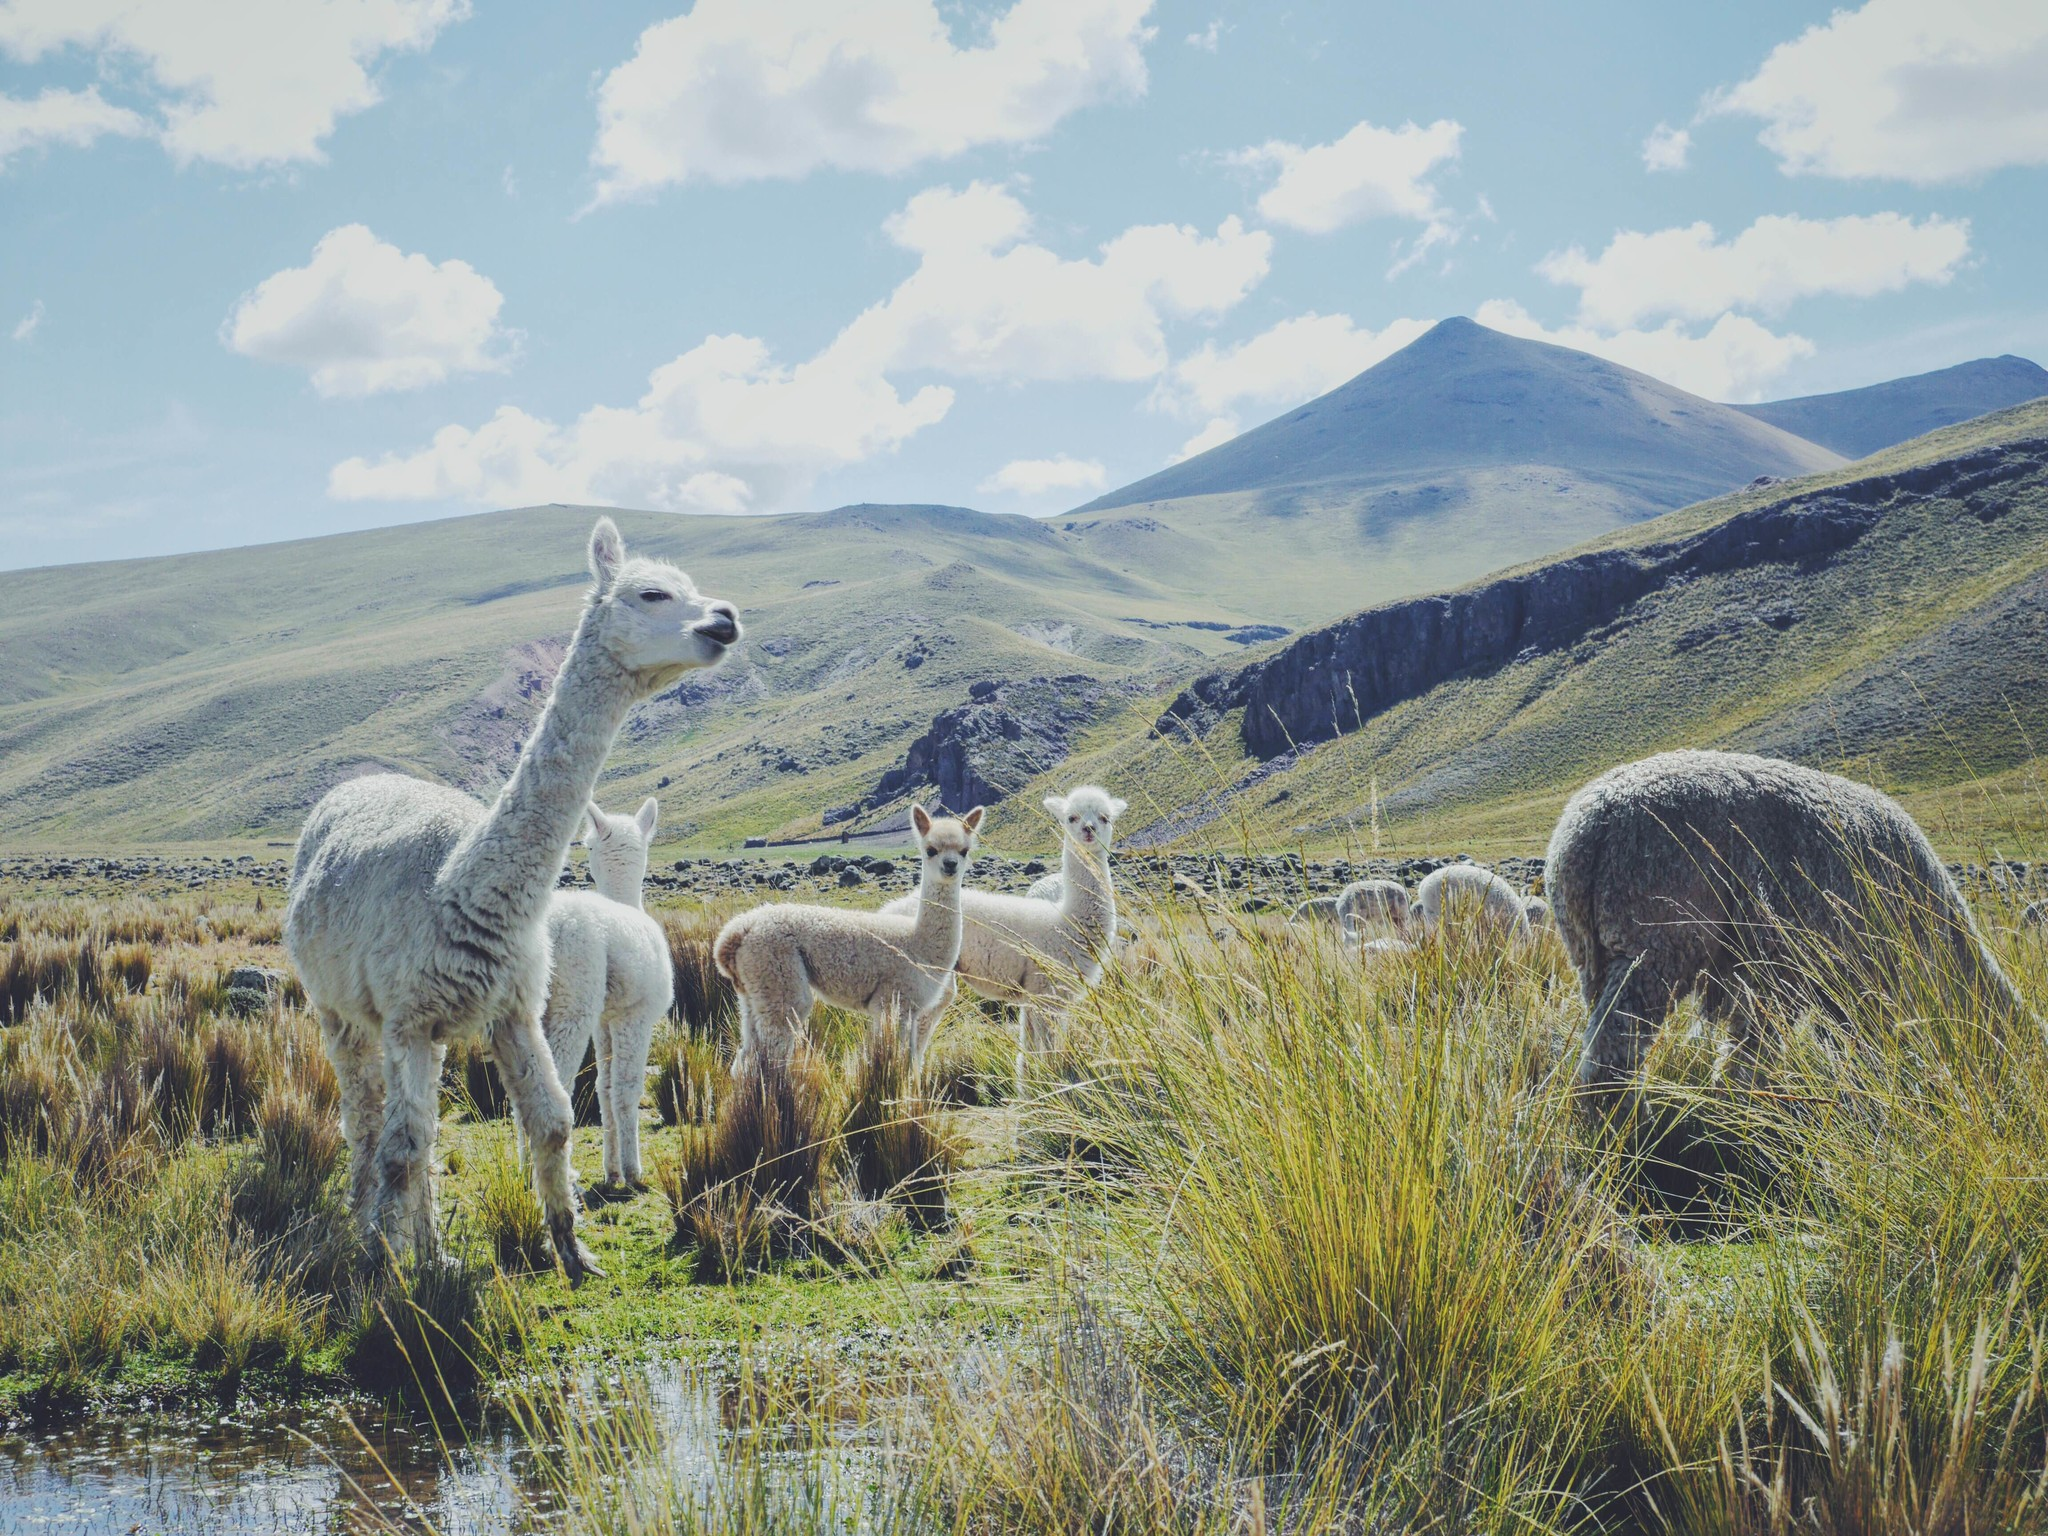 Baby alpacas living free in the andes of Peru alpaca wool picture by Inkari